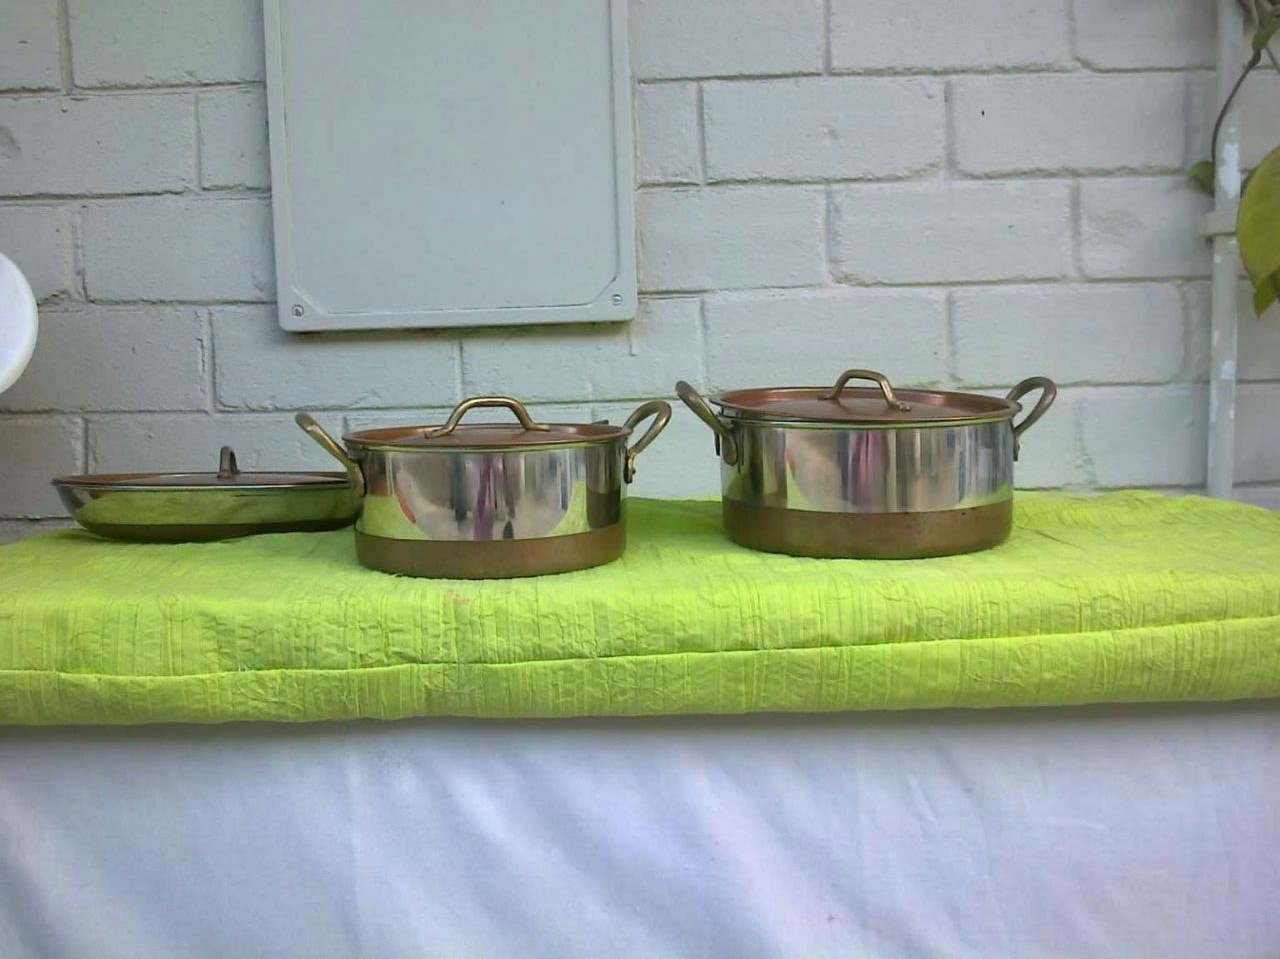 COPPER/BRASS/STAINLESS STEEL POT SET - FOR HANGING AS KITCHEN DECOR OR PERSONAL USE